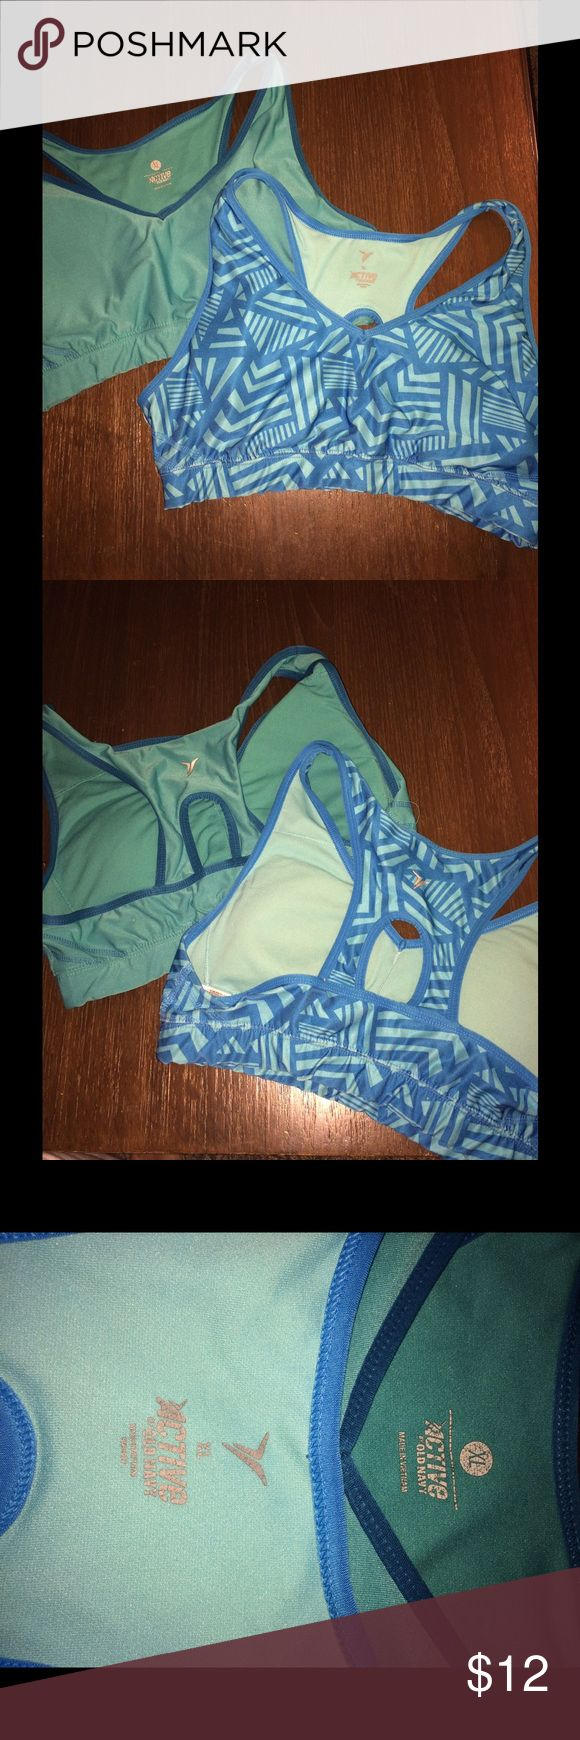 2 Old Navy Sports Bras 2 Old Navy sports bras size XL. Good condition. Smoke free home. Old Navy Intimates & Sleepwear Bras